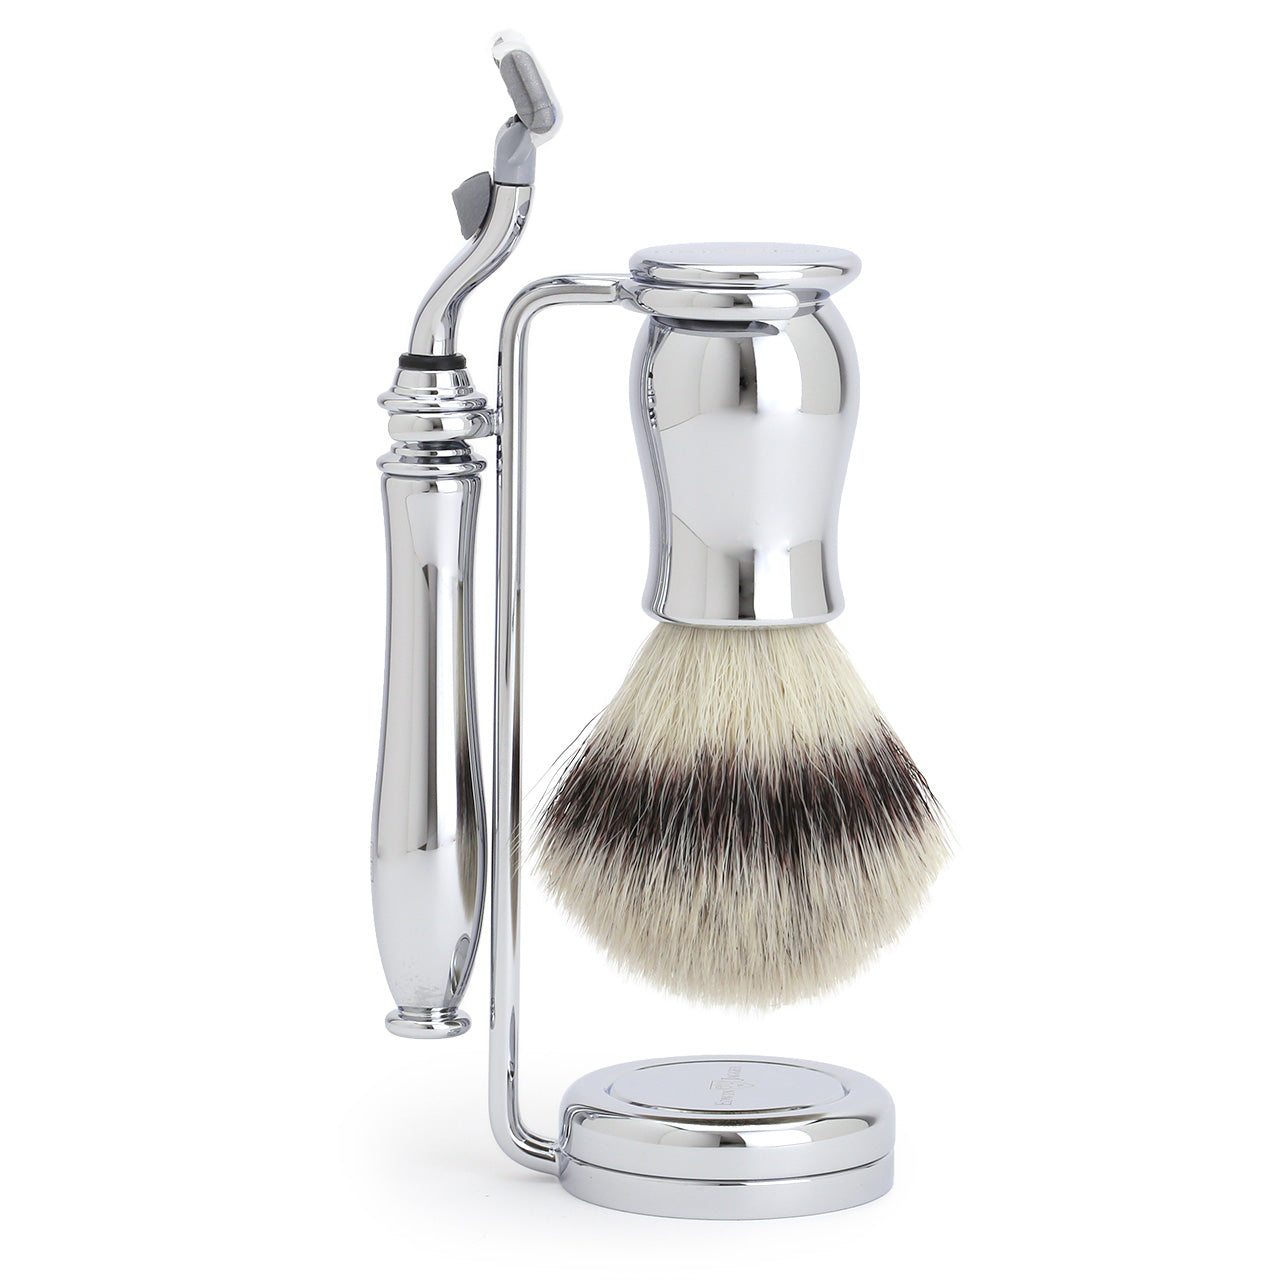 Edwin Jagger Chatsworth Mach3 chrome 3 piece set